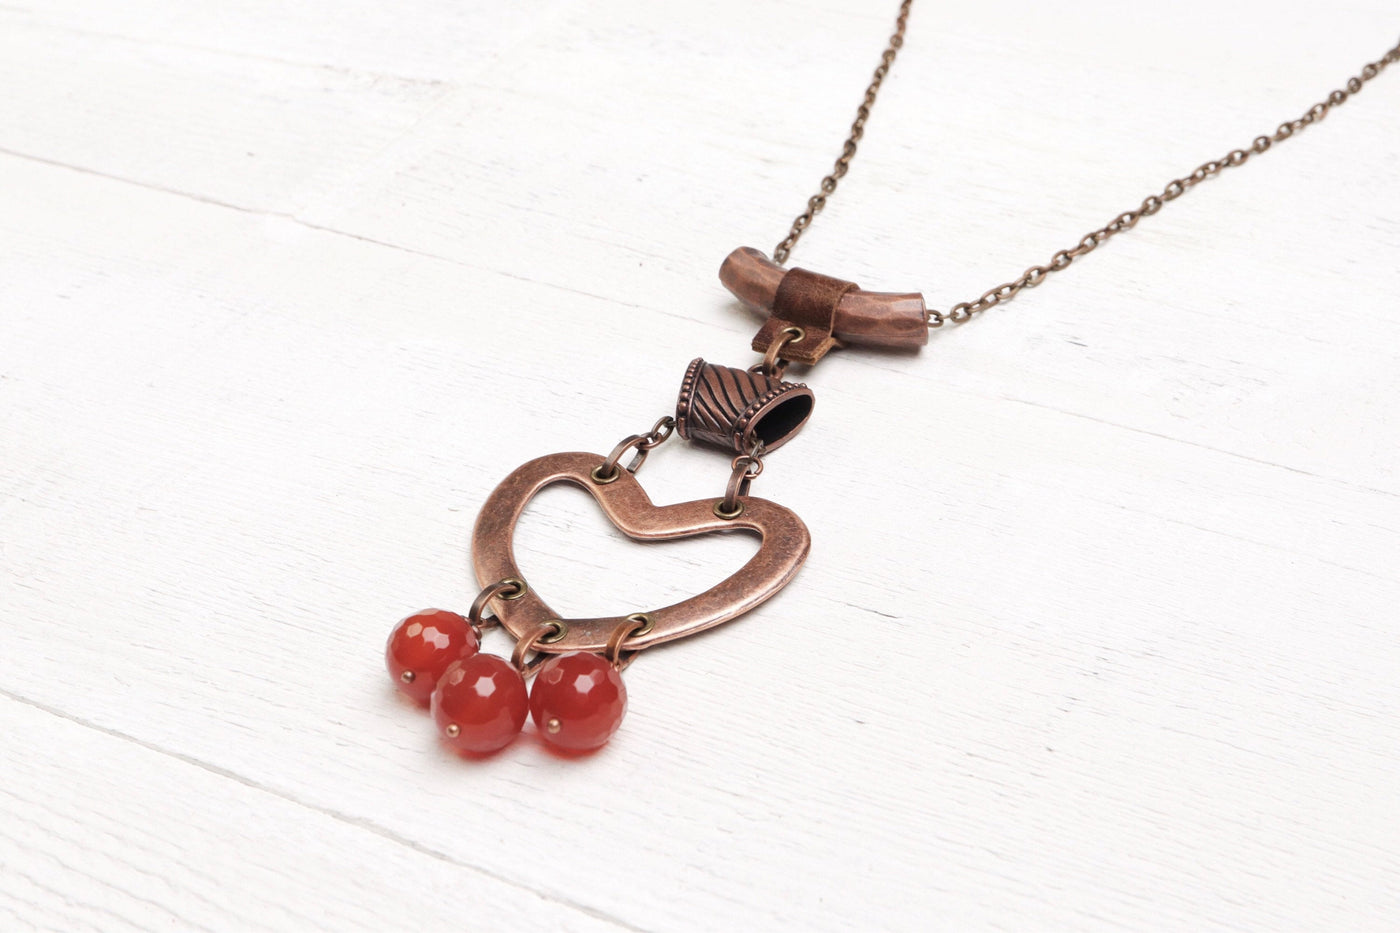 Agate Heart Boho Necklace - Long Carnelian Gypsy Bohemian Handmade Stone Pendant Valentine's Day Mother Wife Love Lover Gift For Her Jewelry